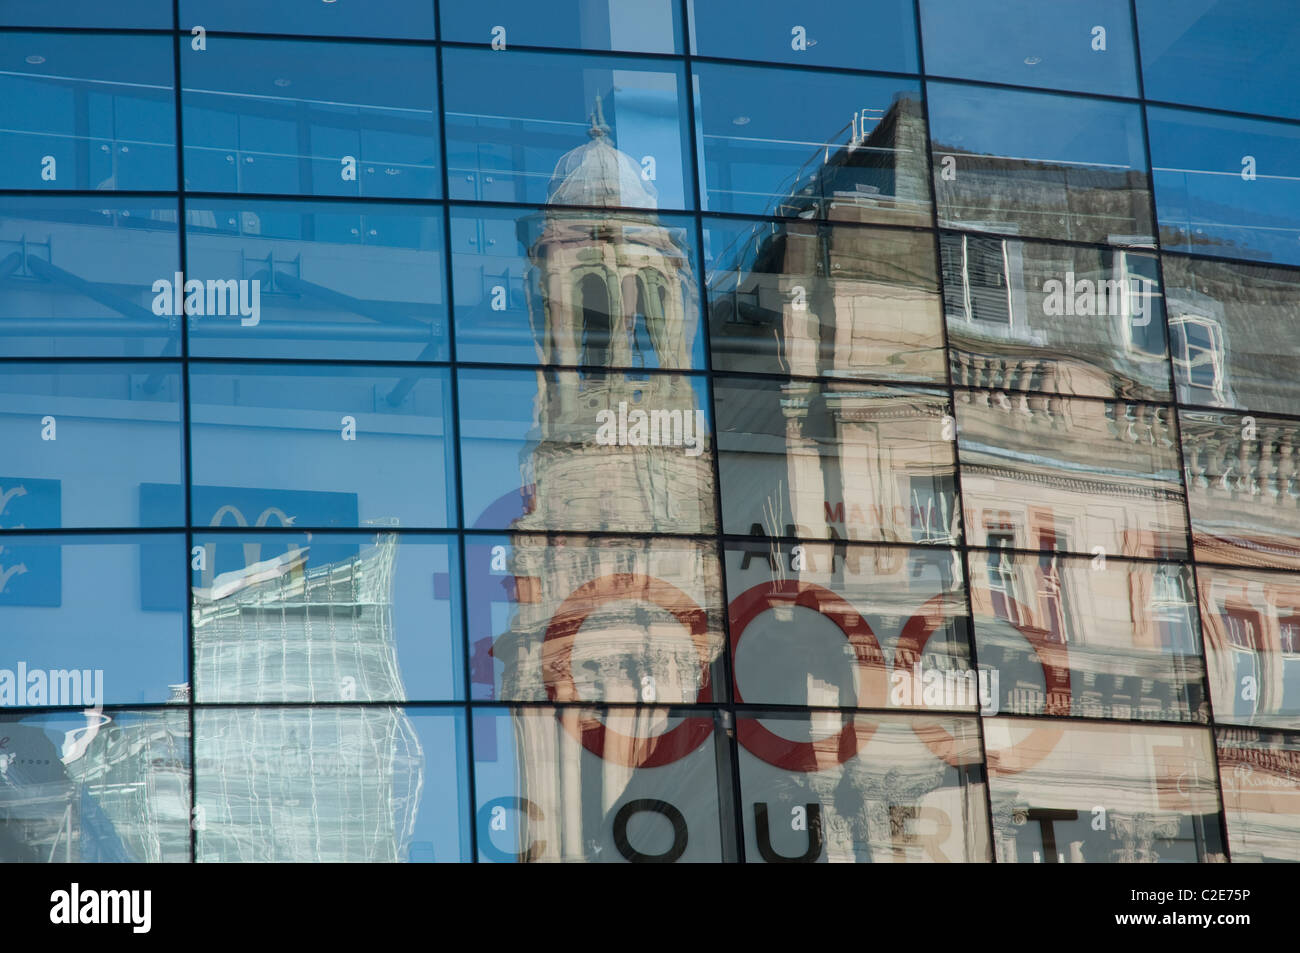 The  Royal Exchange Building and Number One Deansgate reflected in glass window of the Arndale,Manchester,UK. - Stock Image